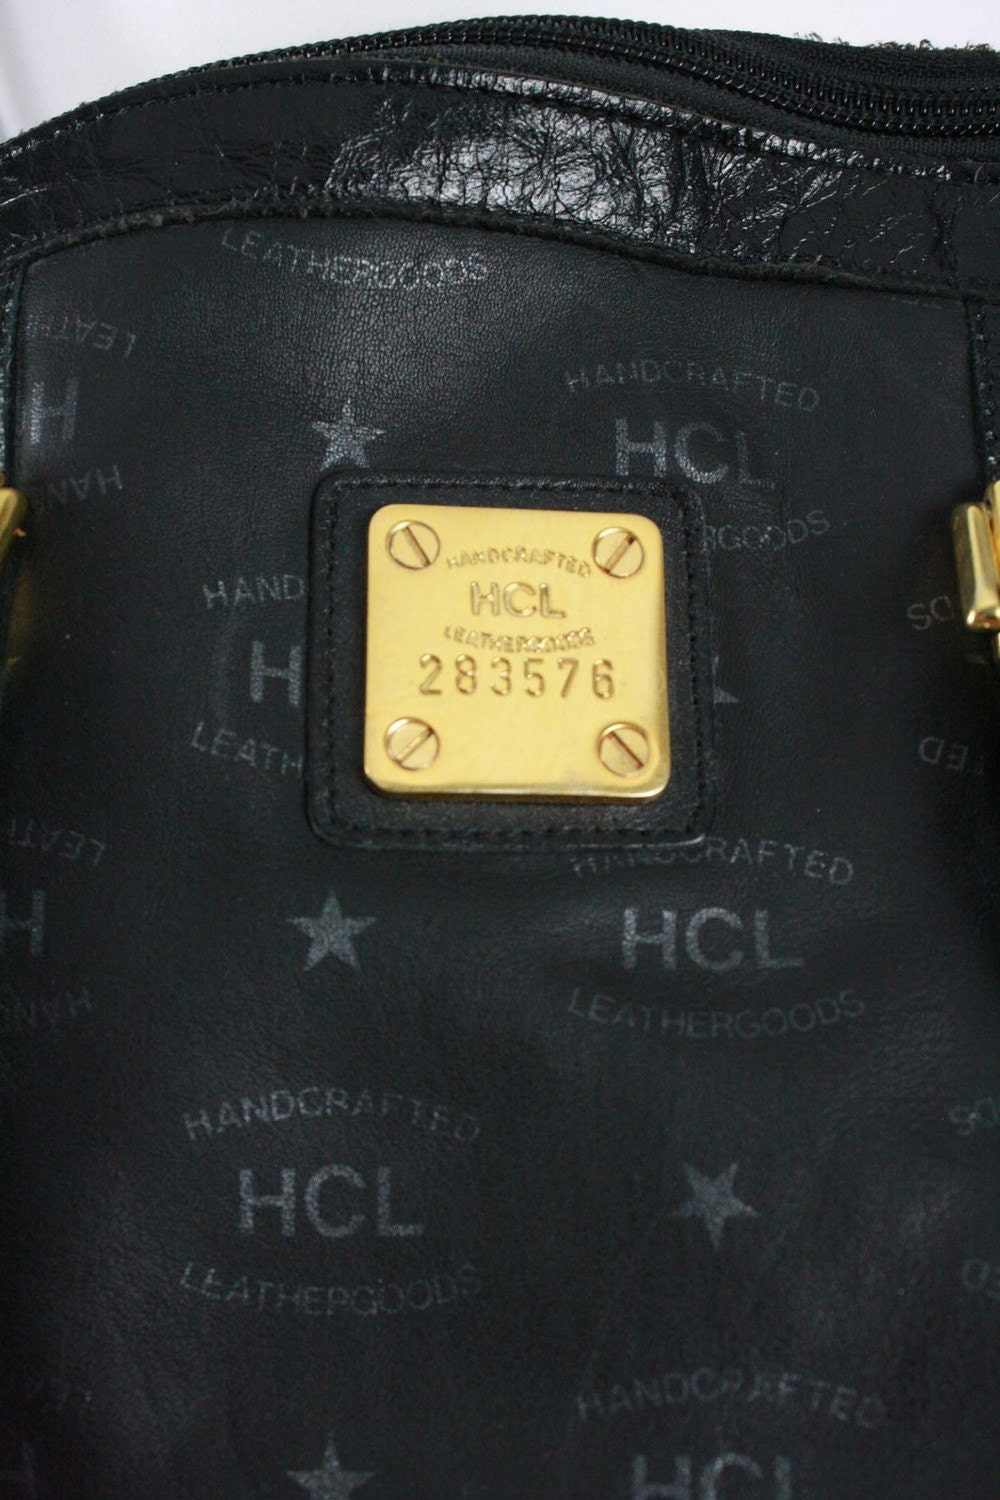 Hcl handcrafted leather goods - Add It To Your Favorites To Revisit It Later